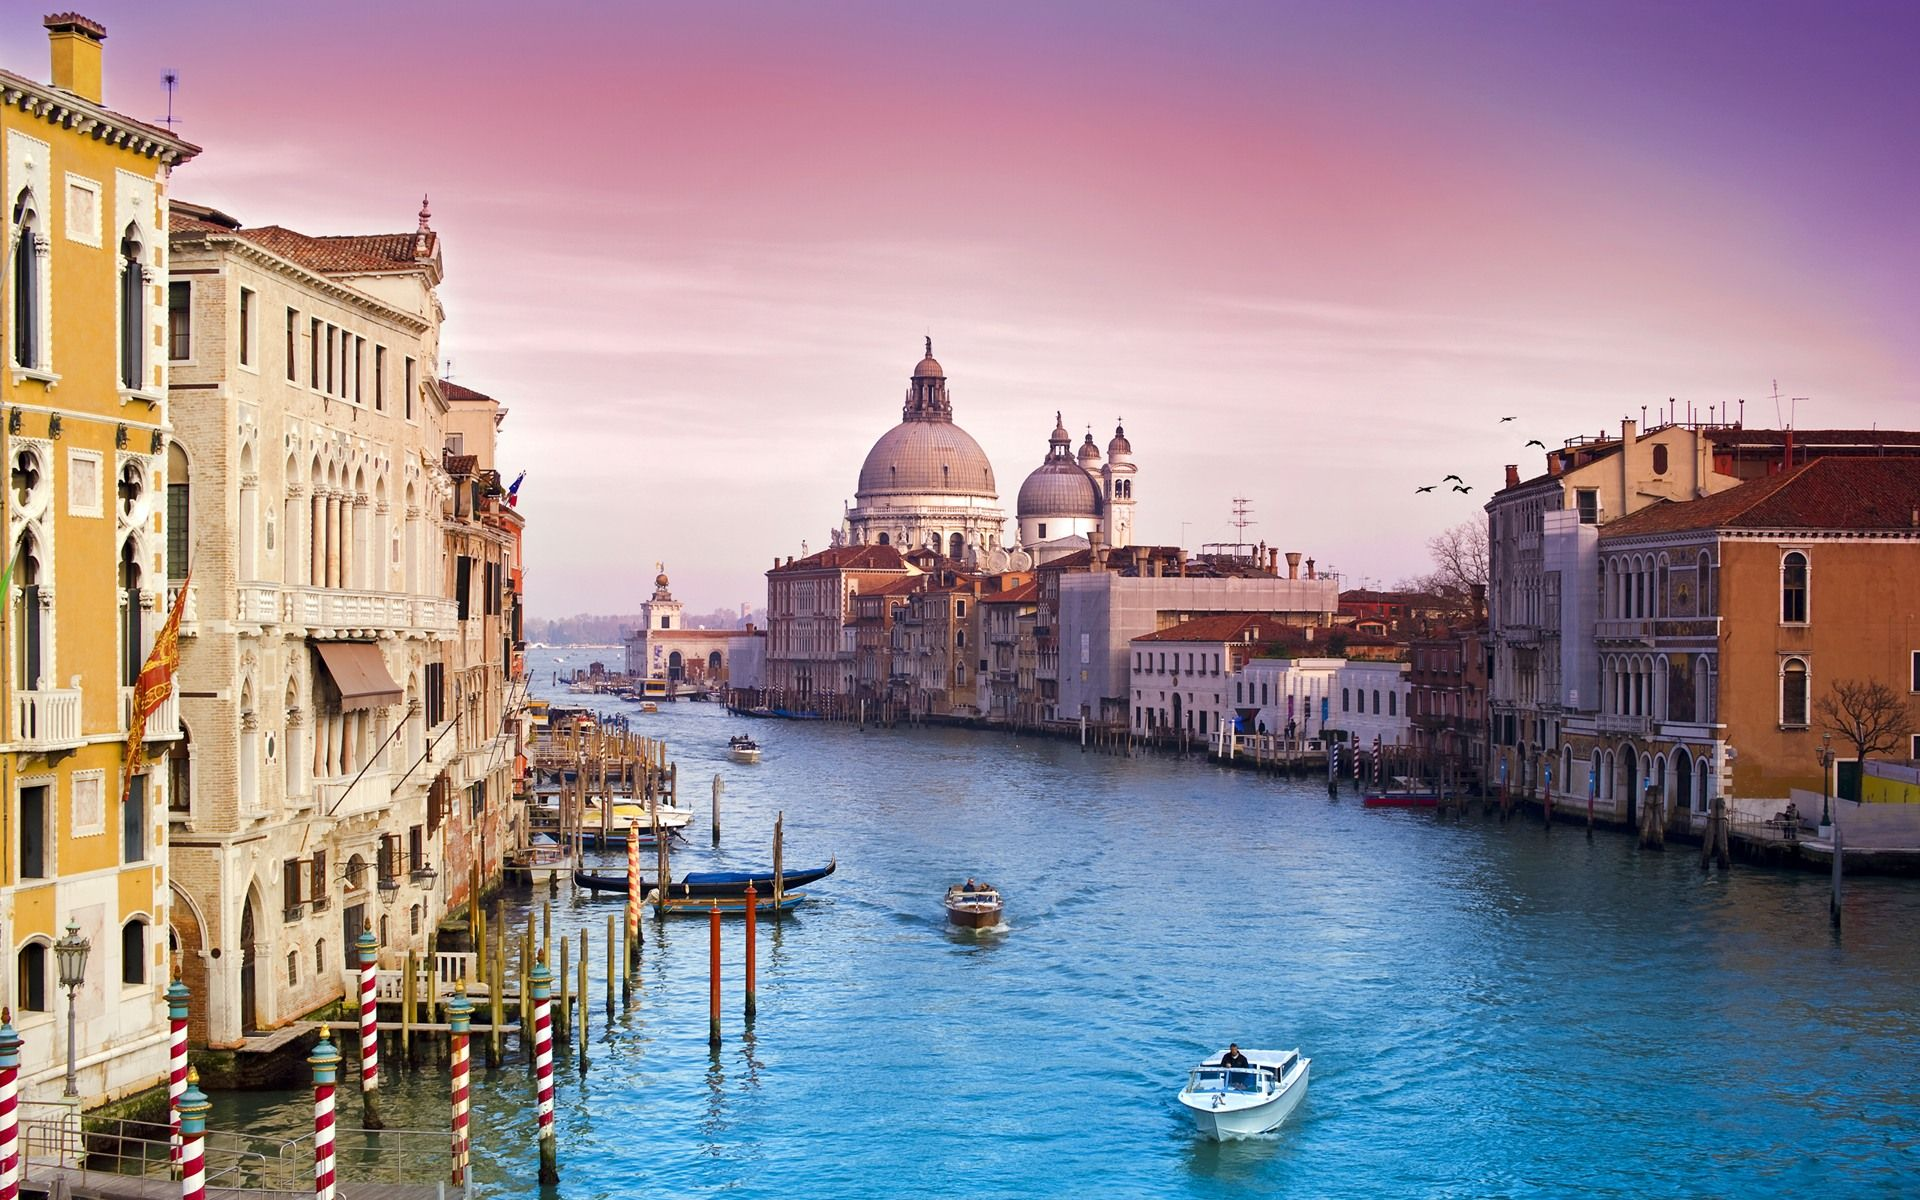 italy scenery pictures